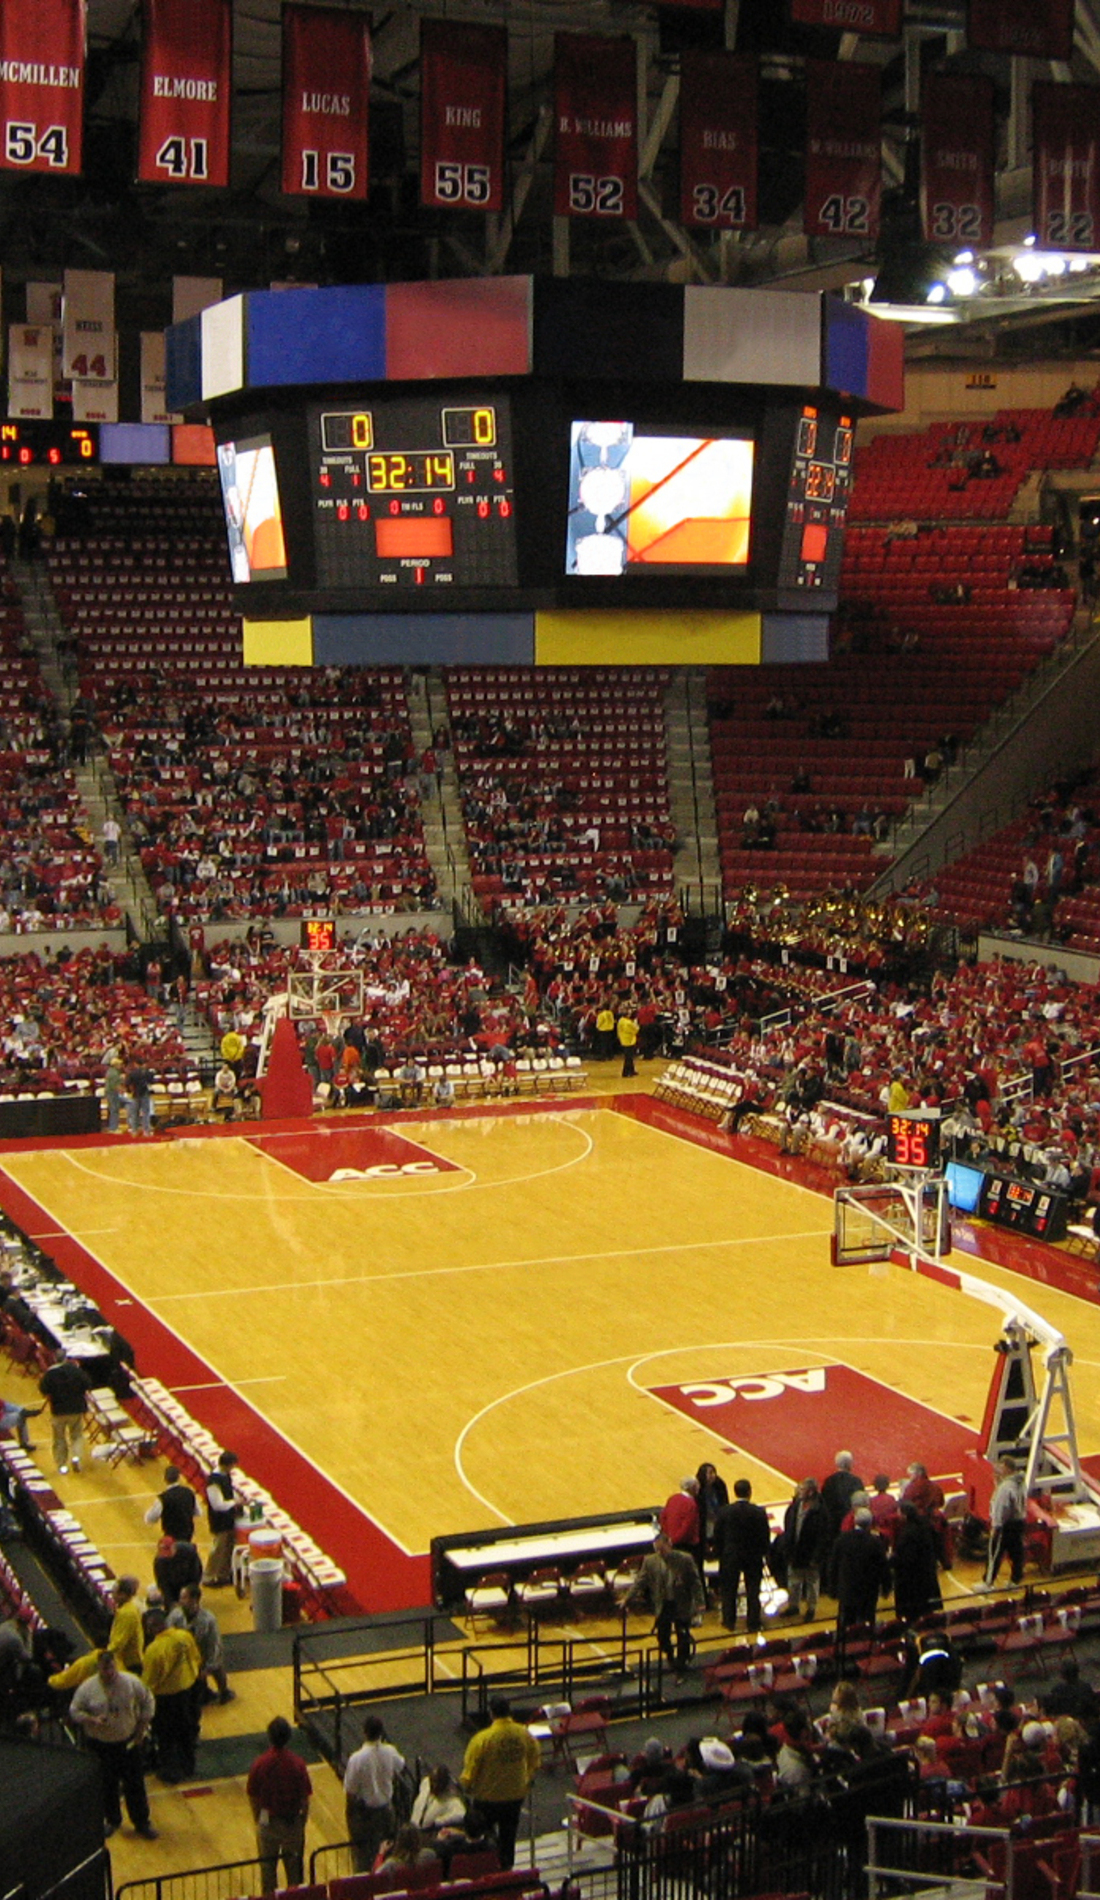 A Maryland Terrapins Basketball live event